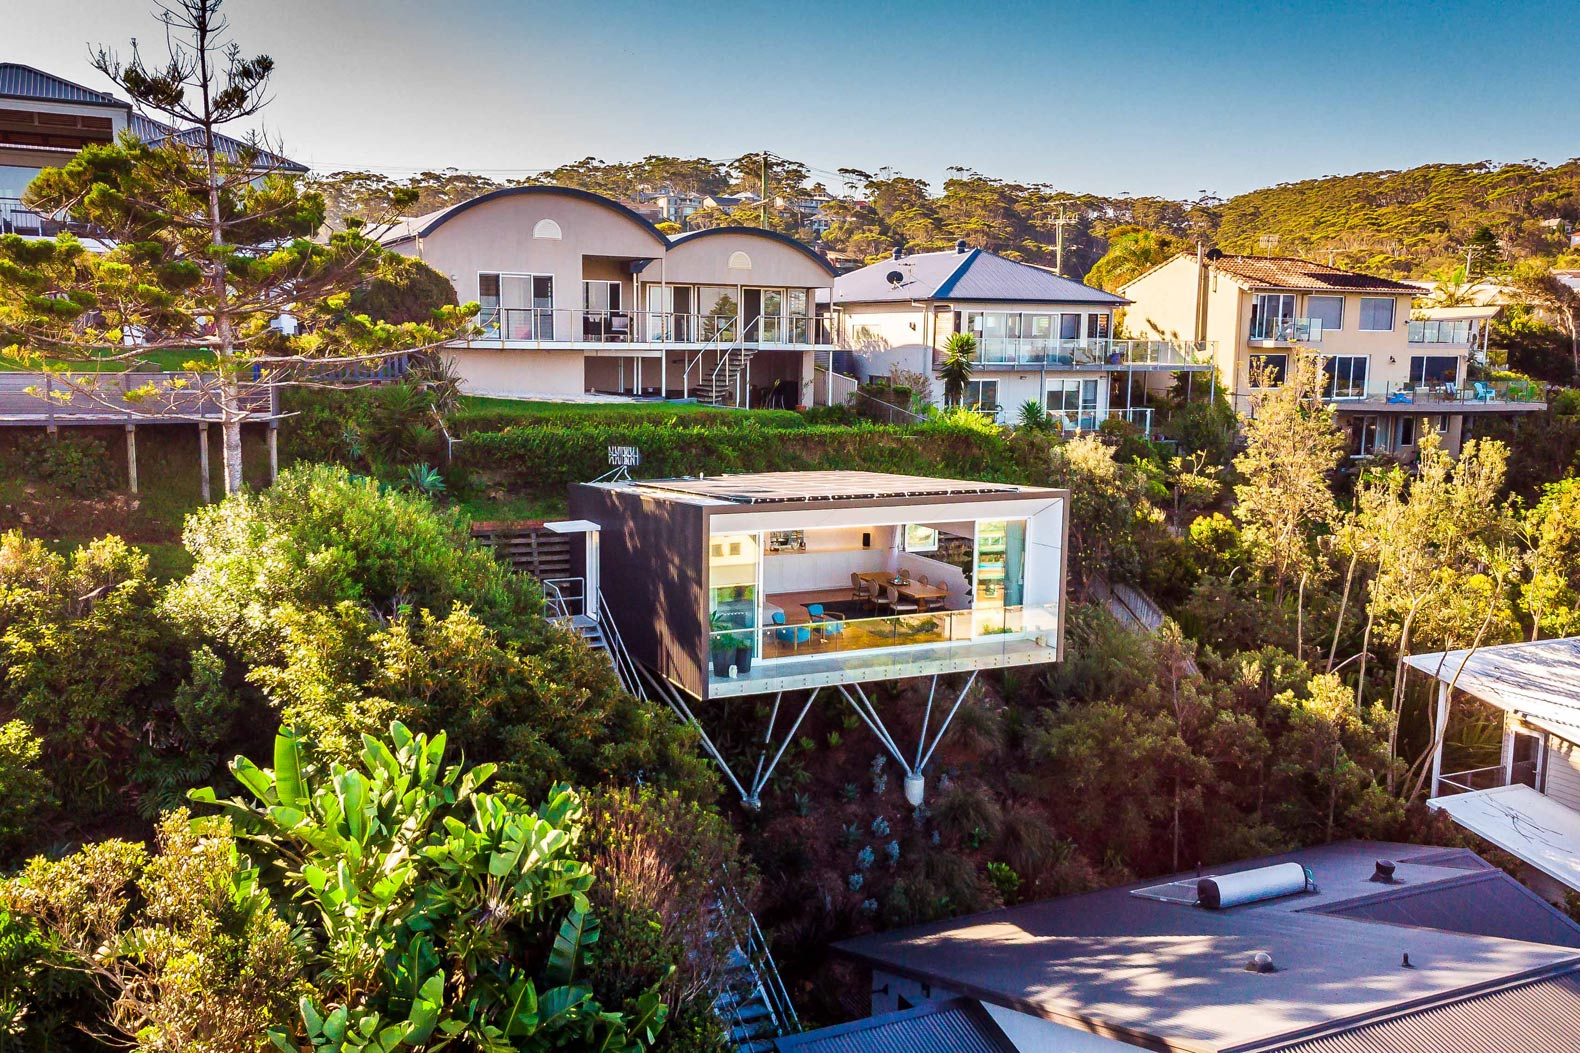 Solar-powered cube home in Australia hovers over the landscape